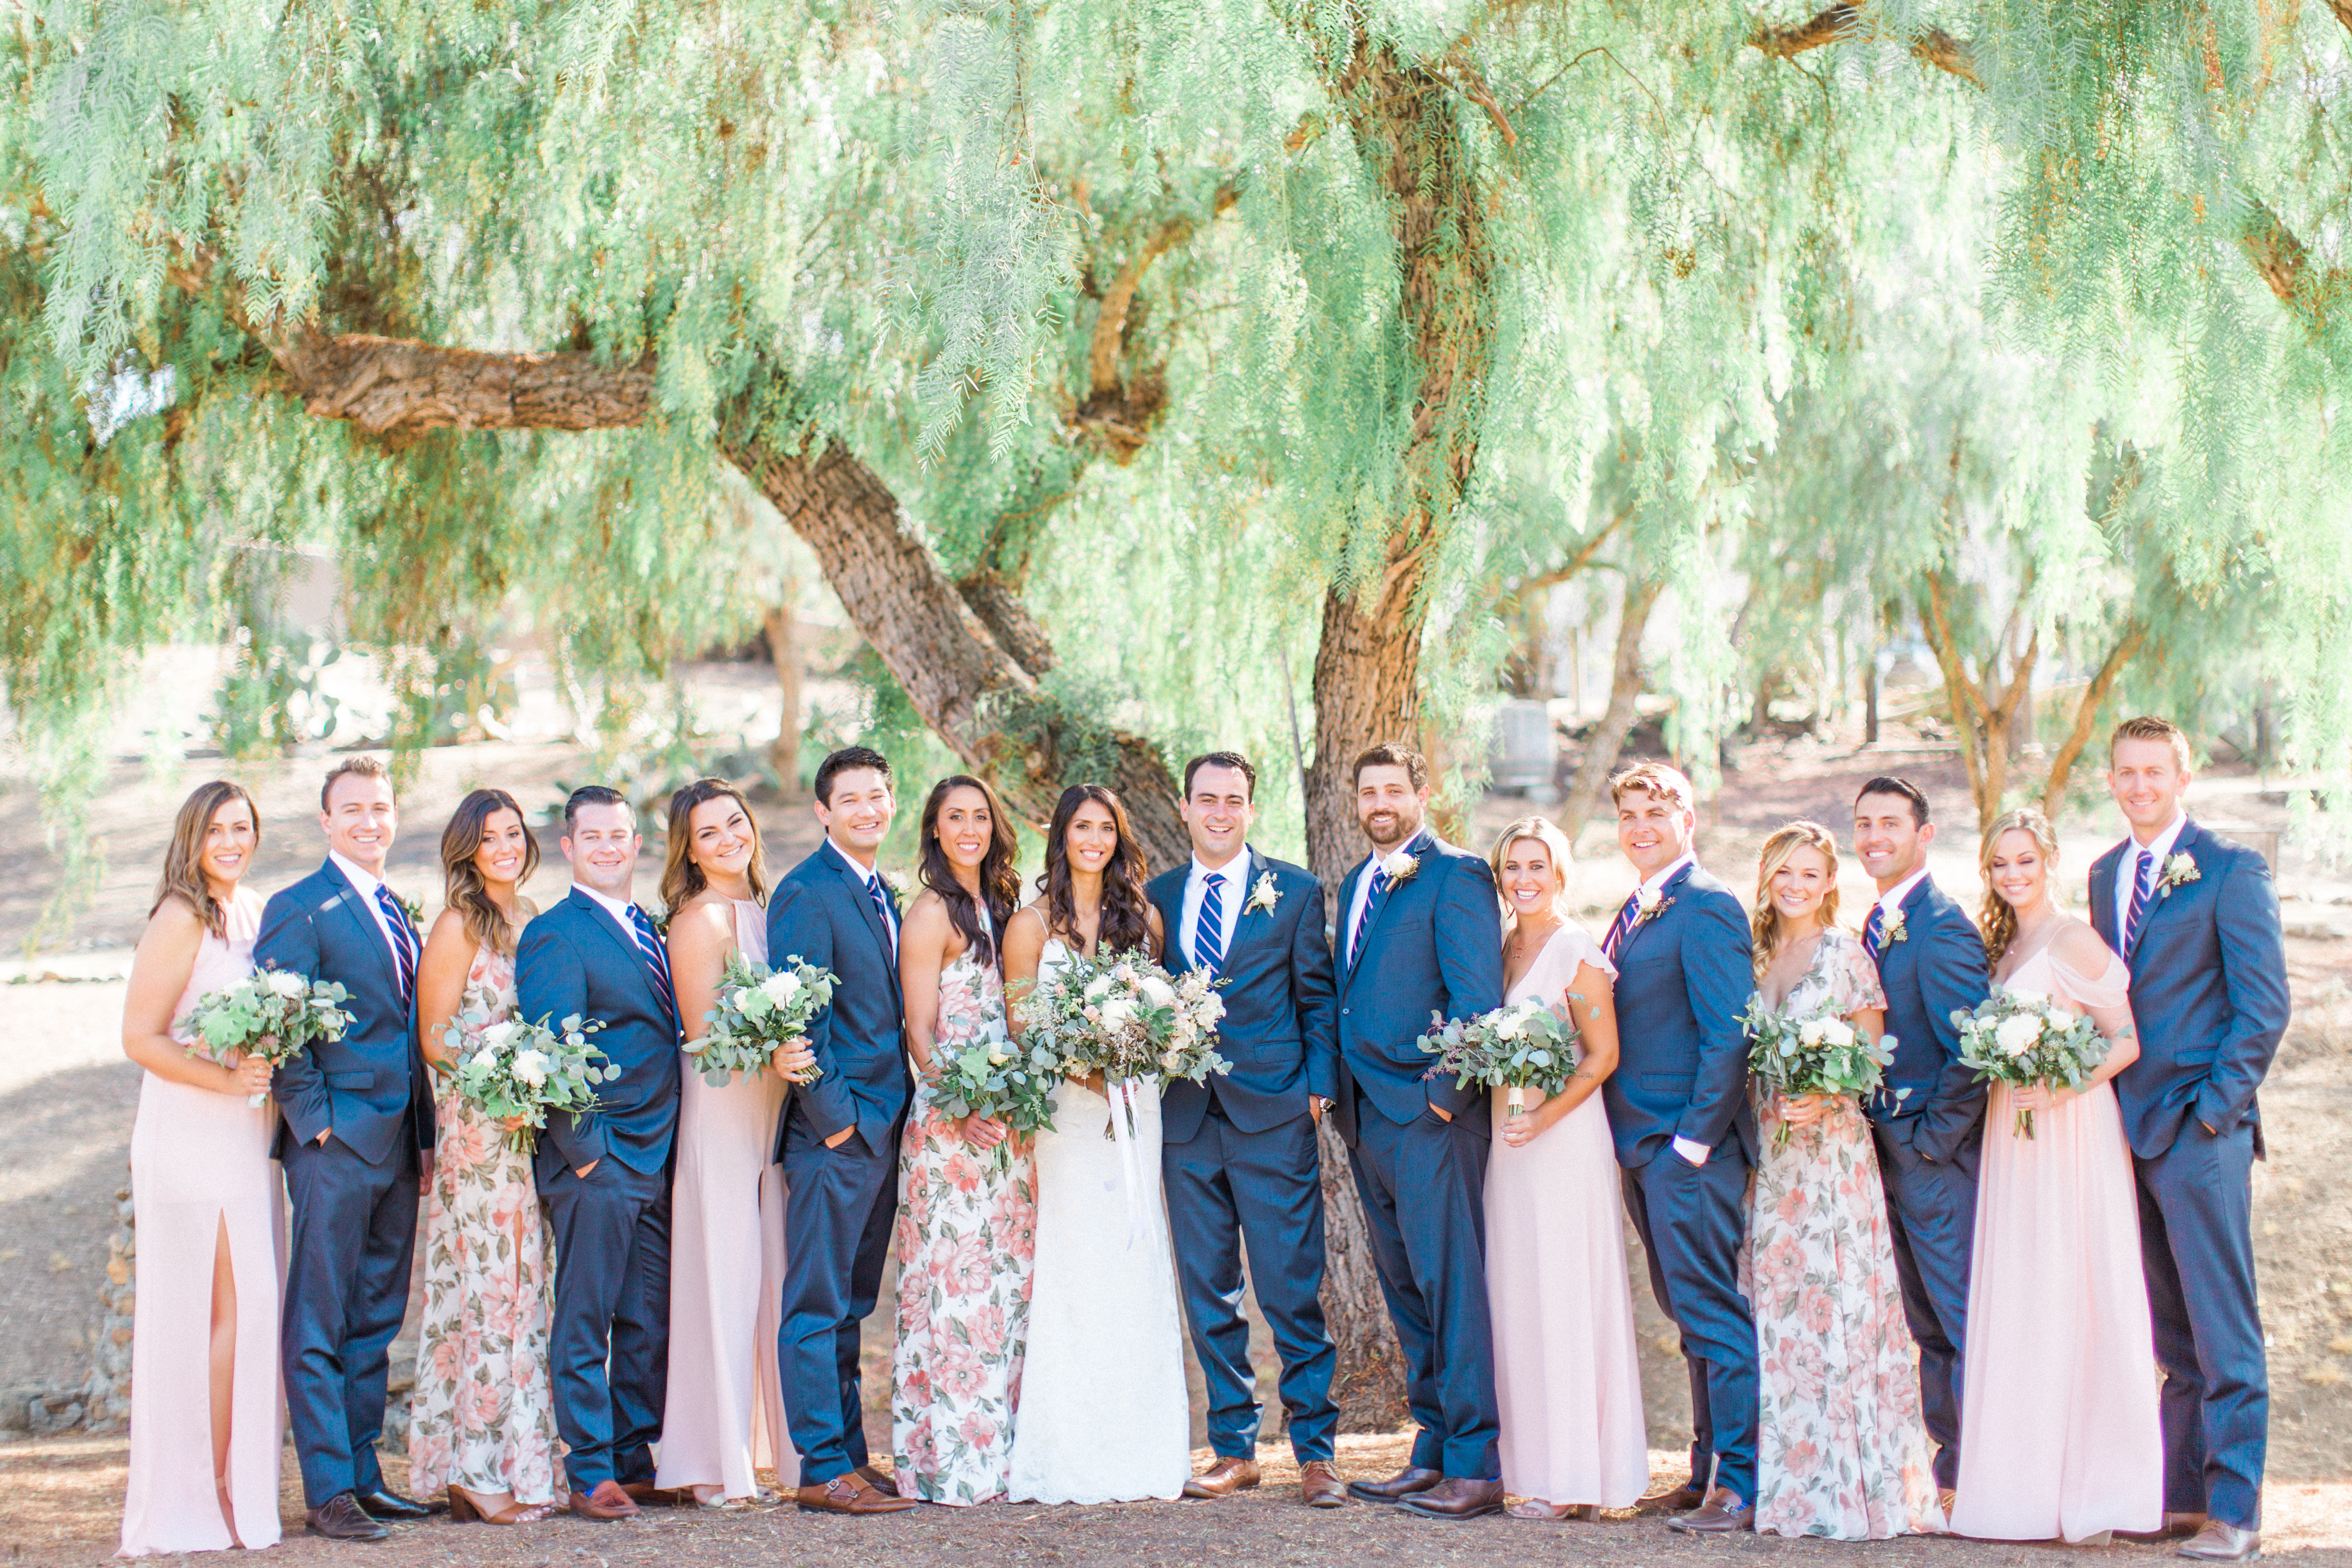 When It Comes To Styling Your Wedding Party We Always Love Those Diffe Color Hues And Patterns From A Mix Of Fl Pink At H C S